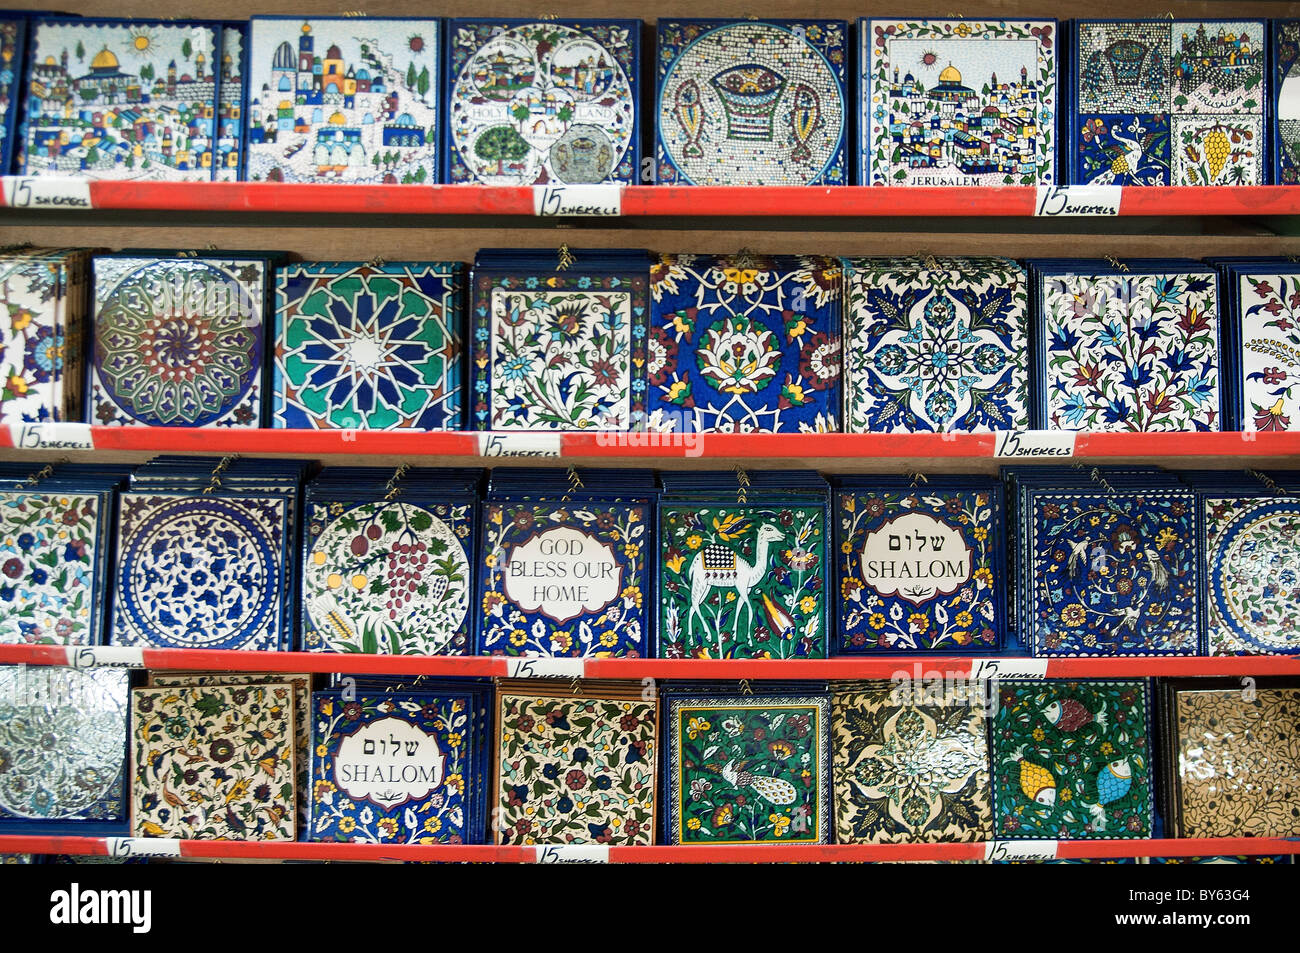 Israel jerusalem old city the market decorated ceramic tiles on israel jerusalem old city the market decorated ceramic tiles on sale dailygadgetfo Images